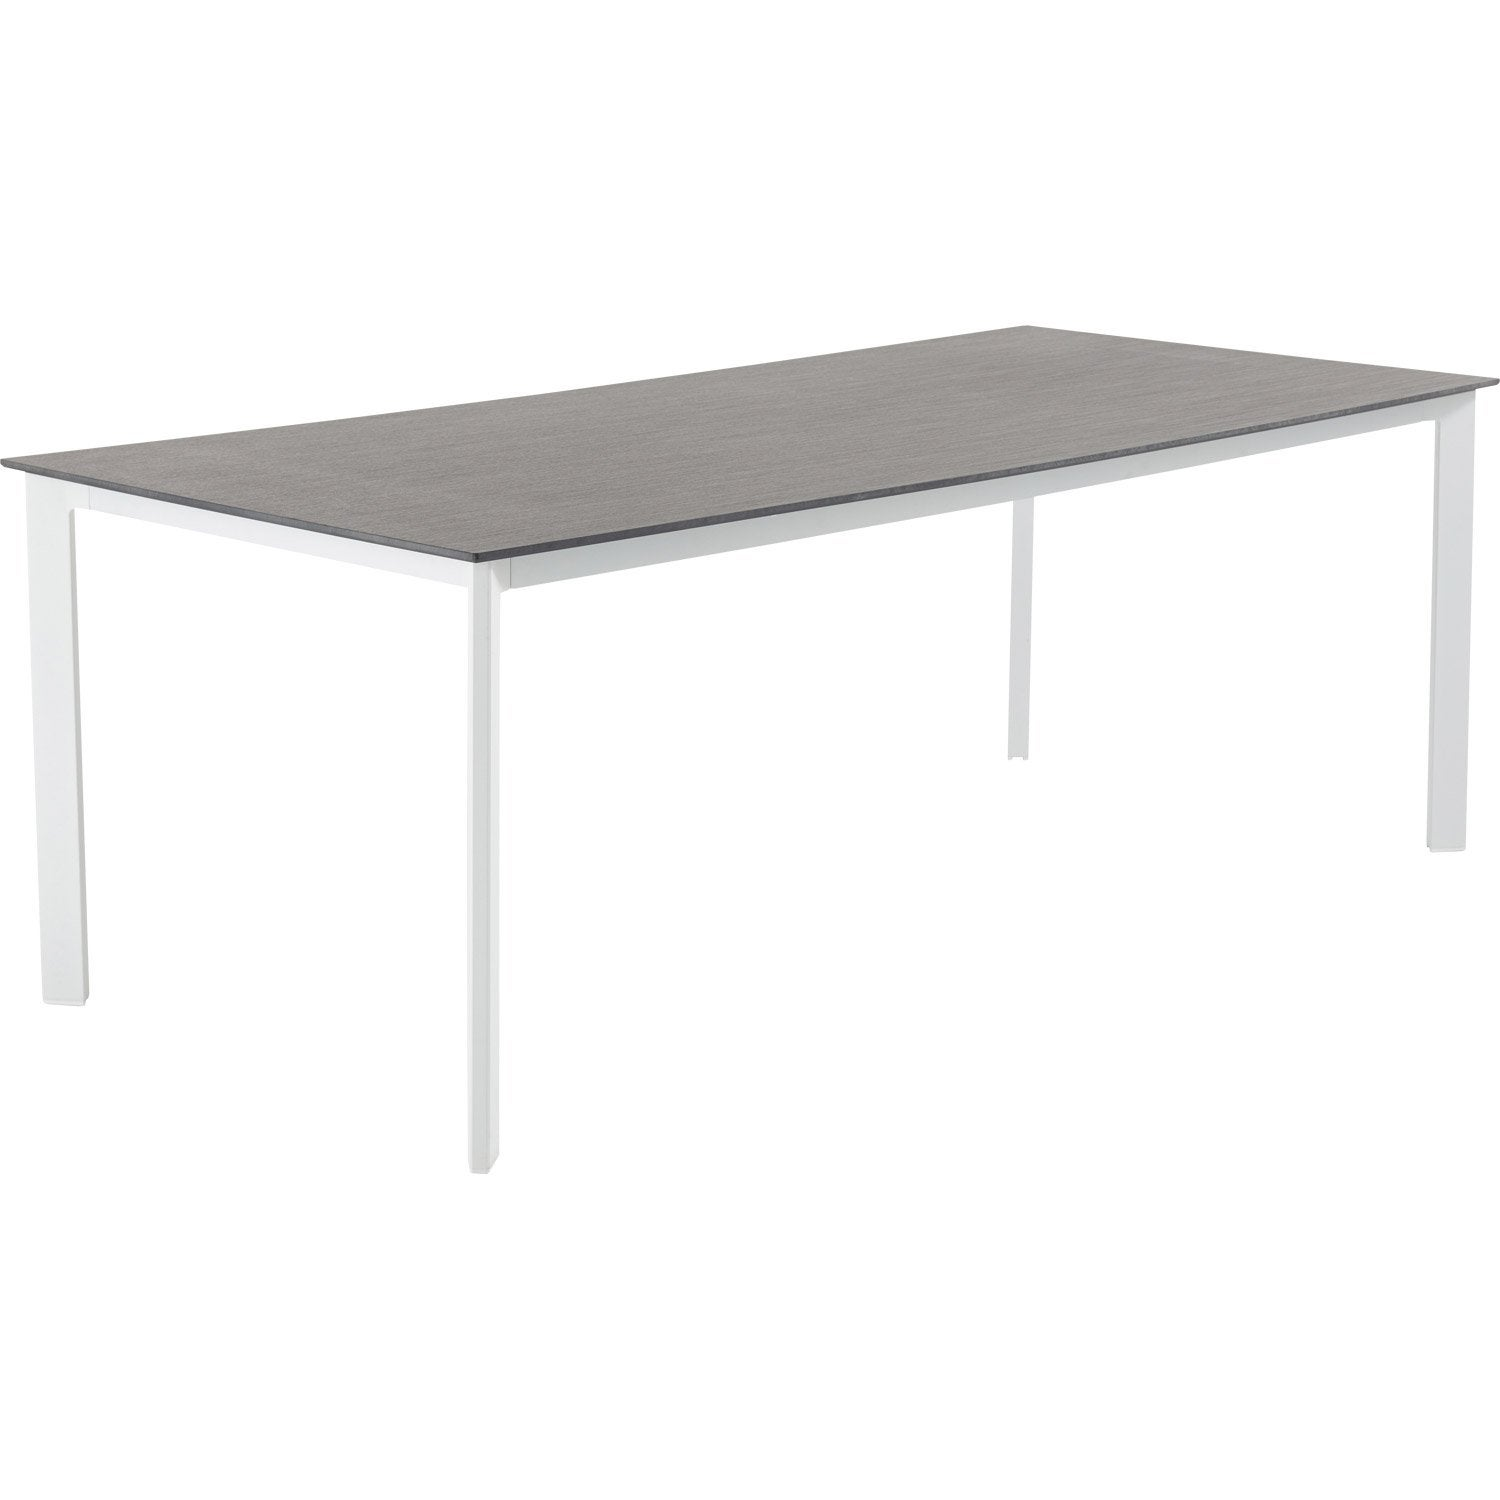 Table de jardin naterial marbella rectangulaire gris 8 personnes leroy merlin - Leroy merlin table jardin ...